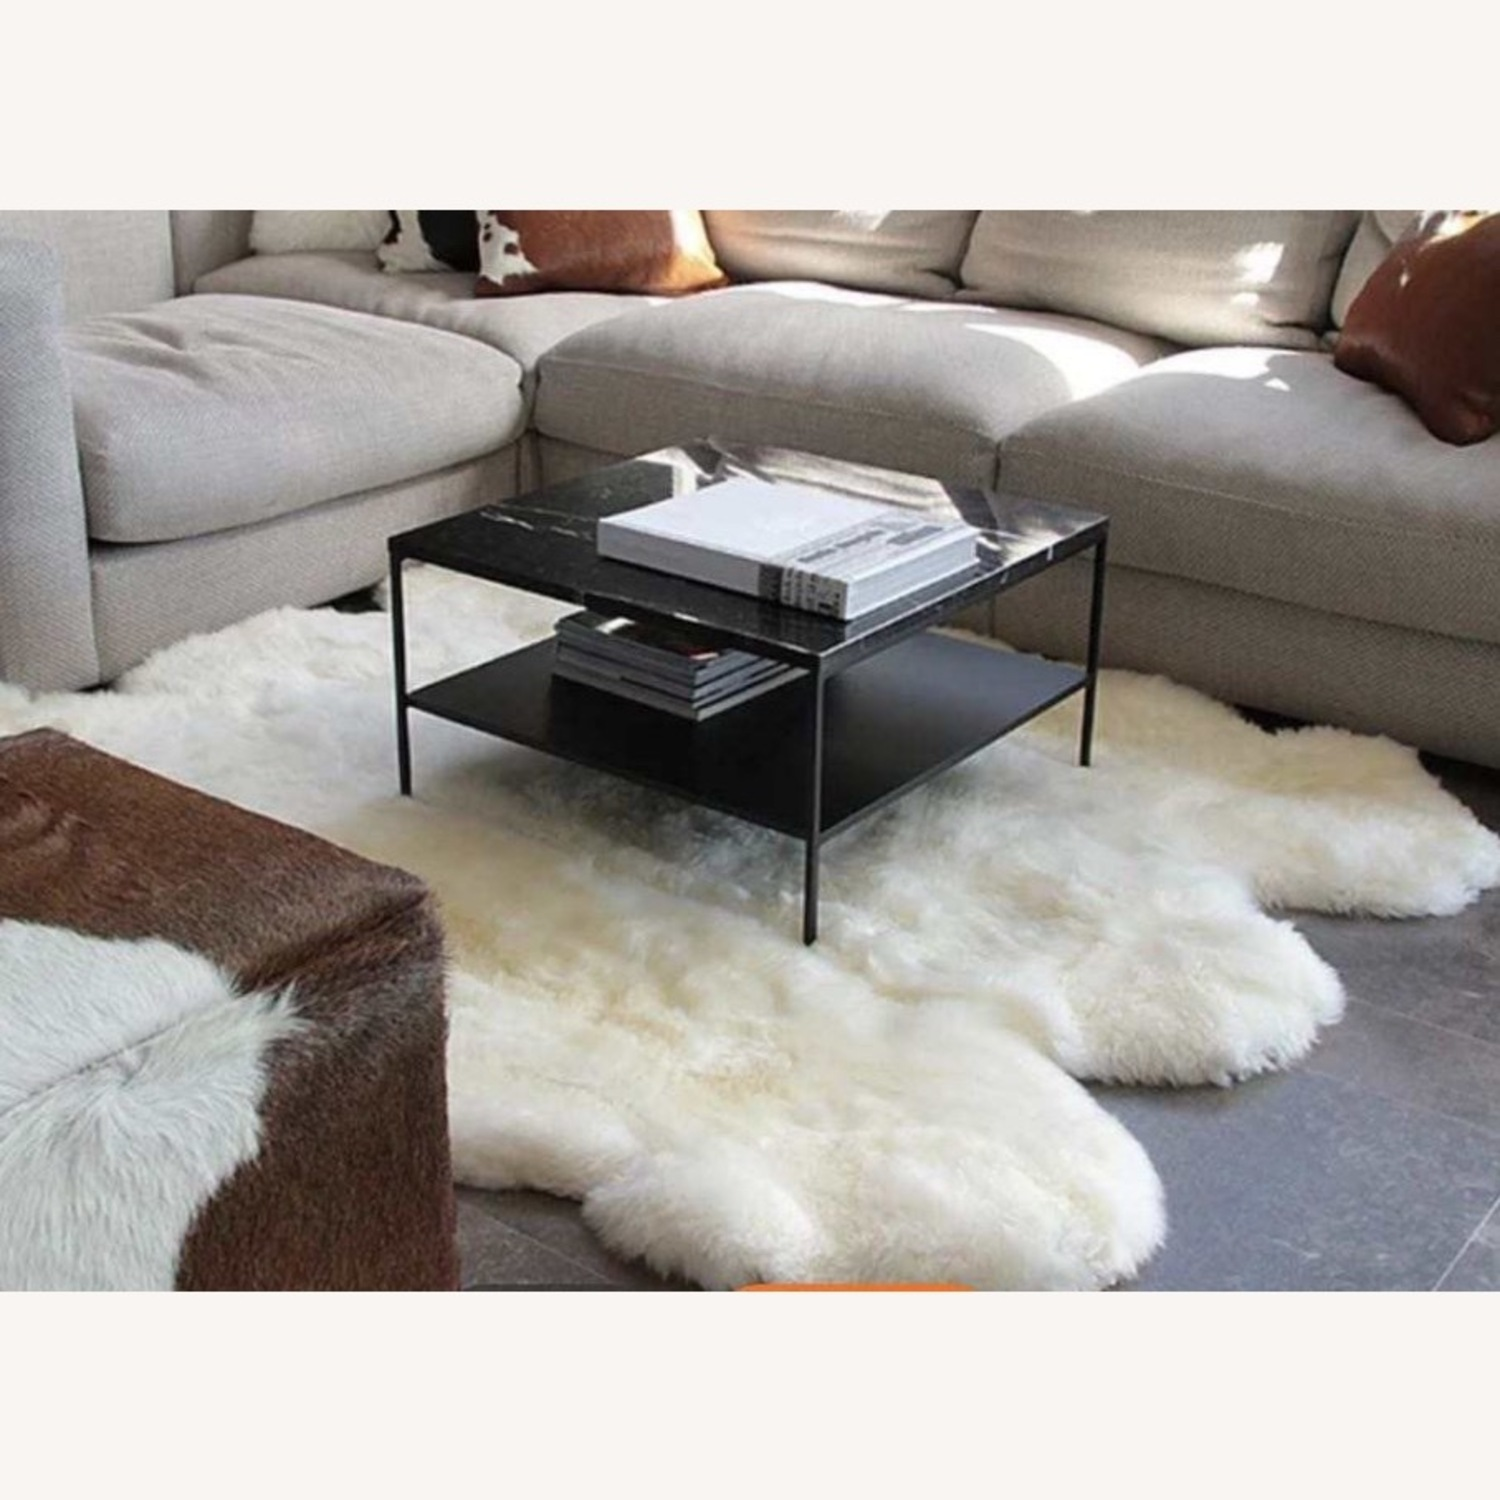 Warm Floor Mat Made with Authentic Fur - image-1